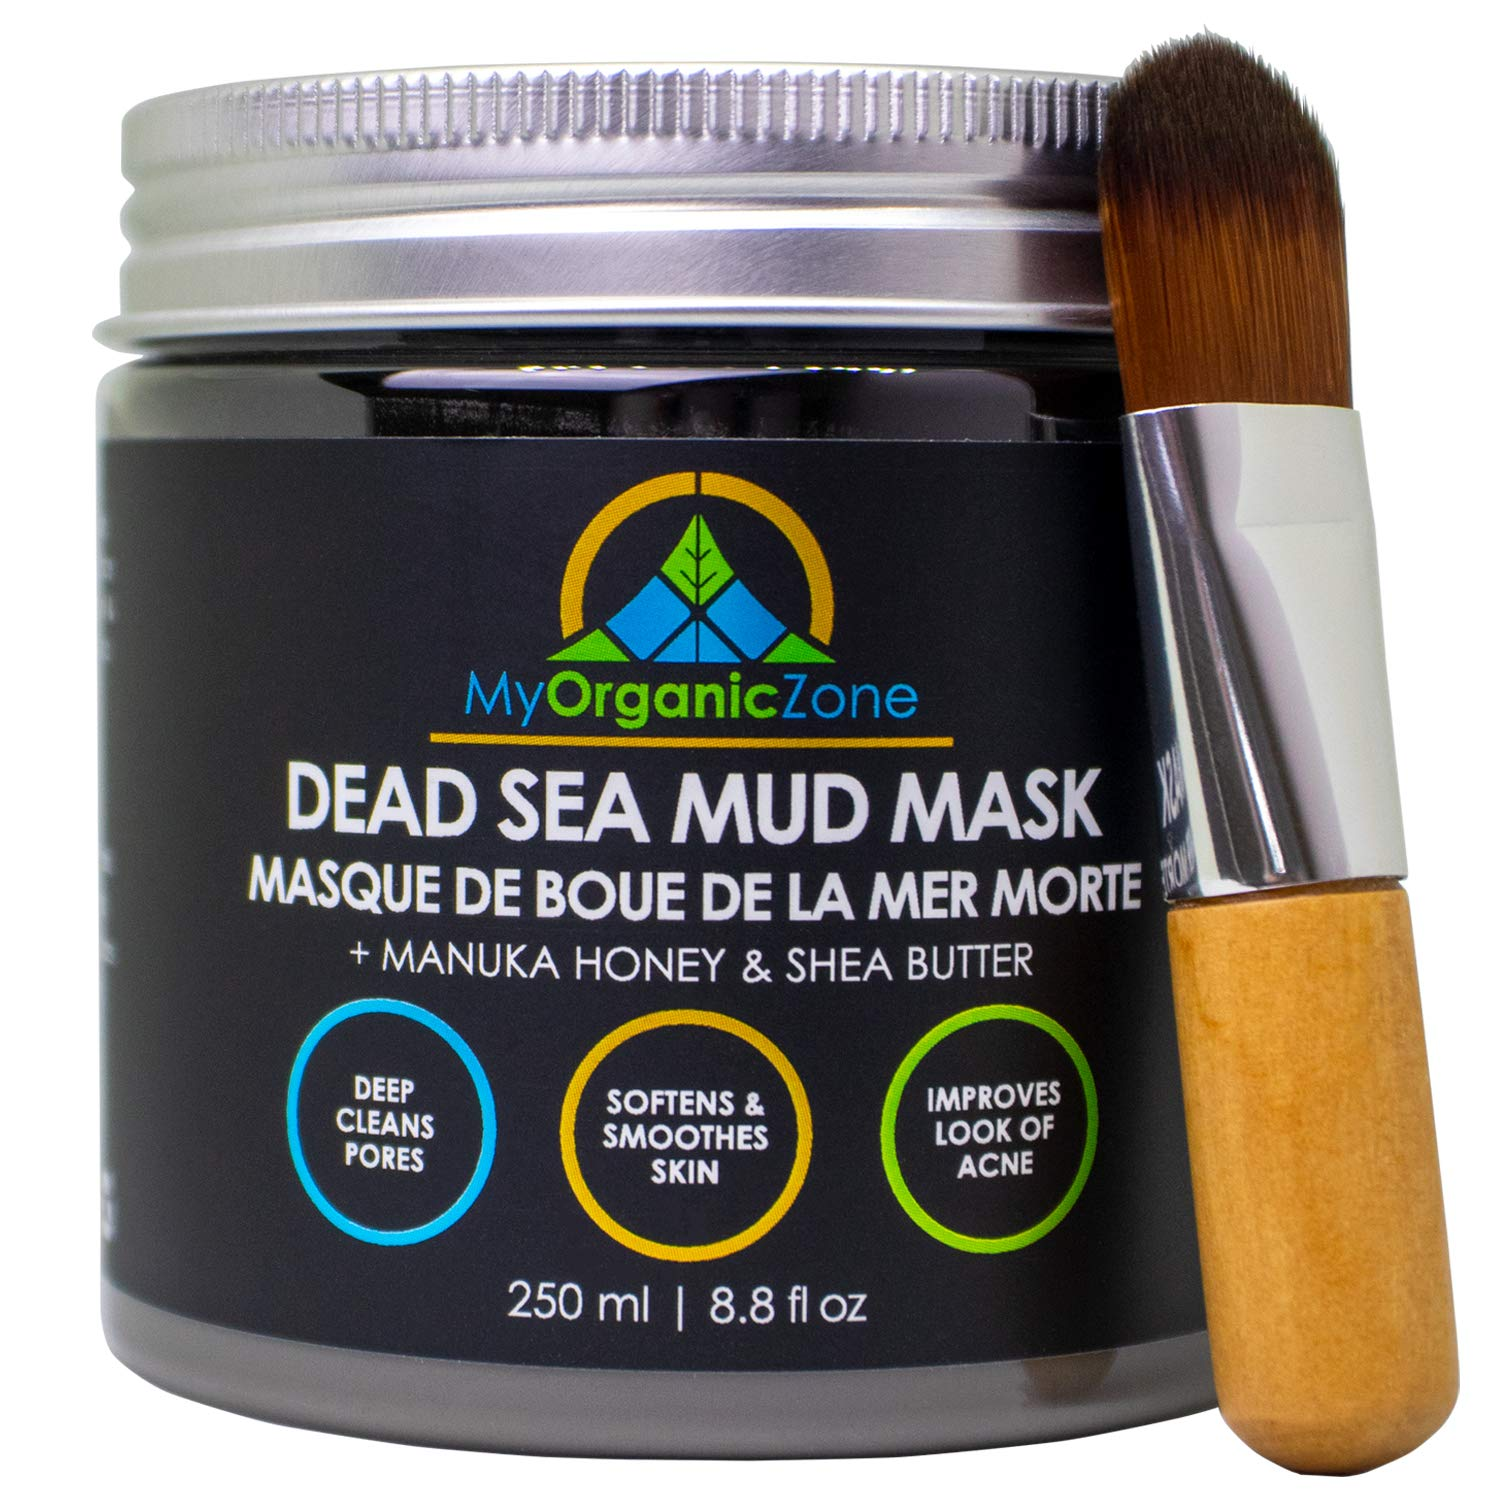 Dead Sea Mud Mask with Brush- Face & Body Deep Pore Cleansing, Acne Treatment, Anti Aging & Anti Wrinkle, Organic Natural Facial Clay Mask for Smoother and Softer Skin (250g./8.8oz.) (Single+Brush) : Beauty